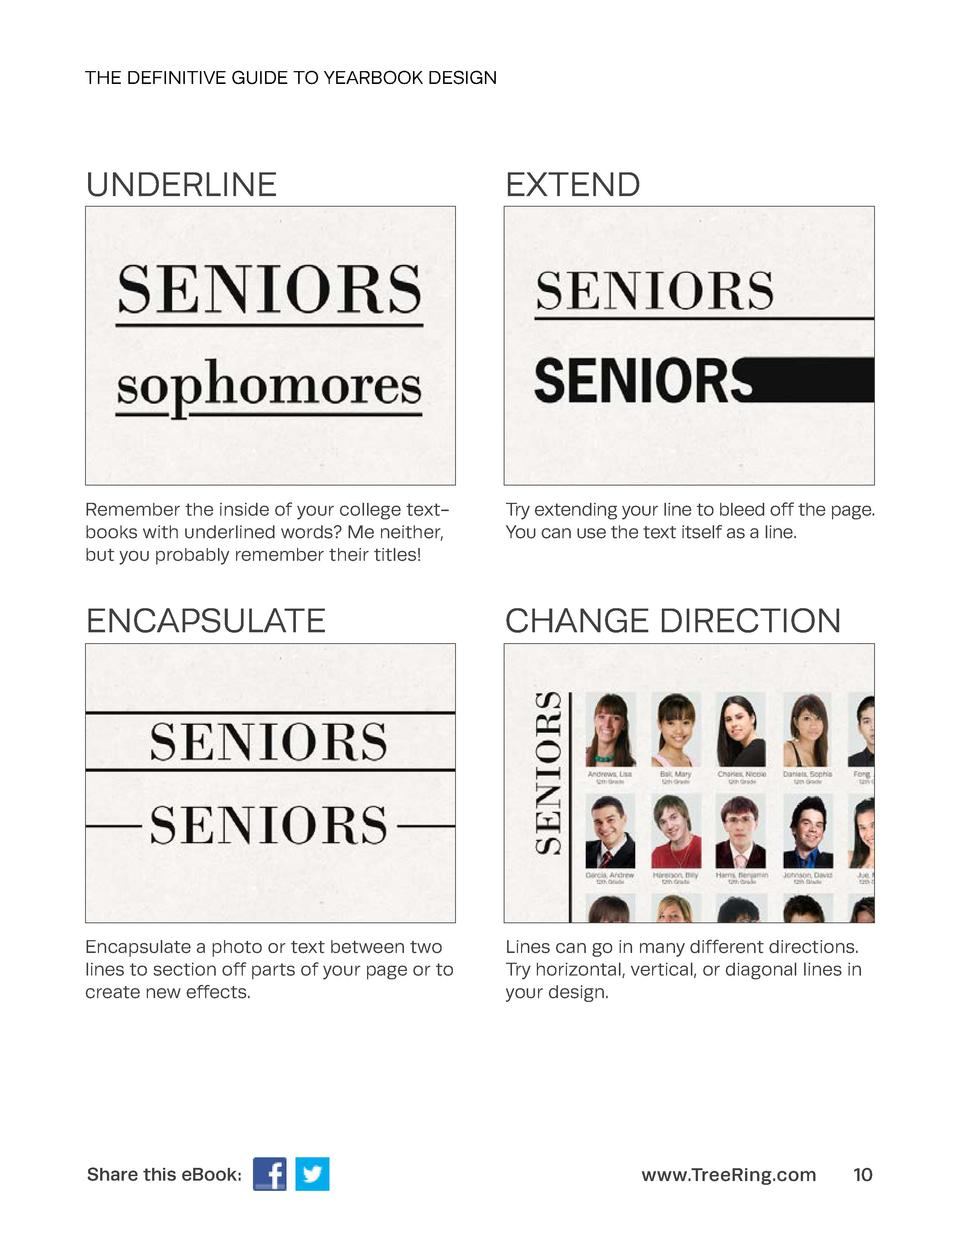 THE DEFINITIVE GUIDE TO YEARBOOK DESIGN  UNDERLINE  EXTEND  Remember the inside of your college textbooks with underlined ...